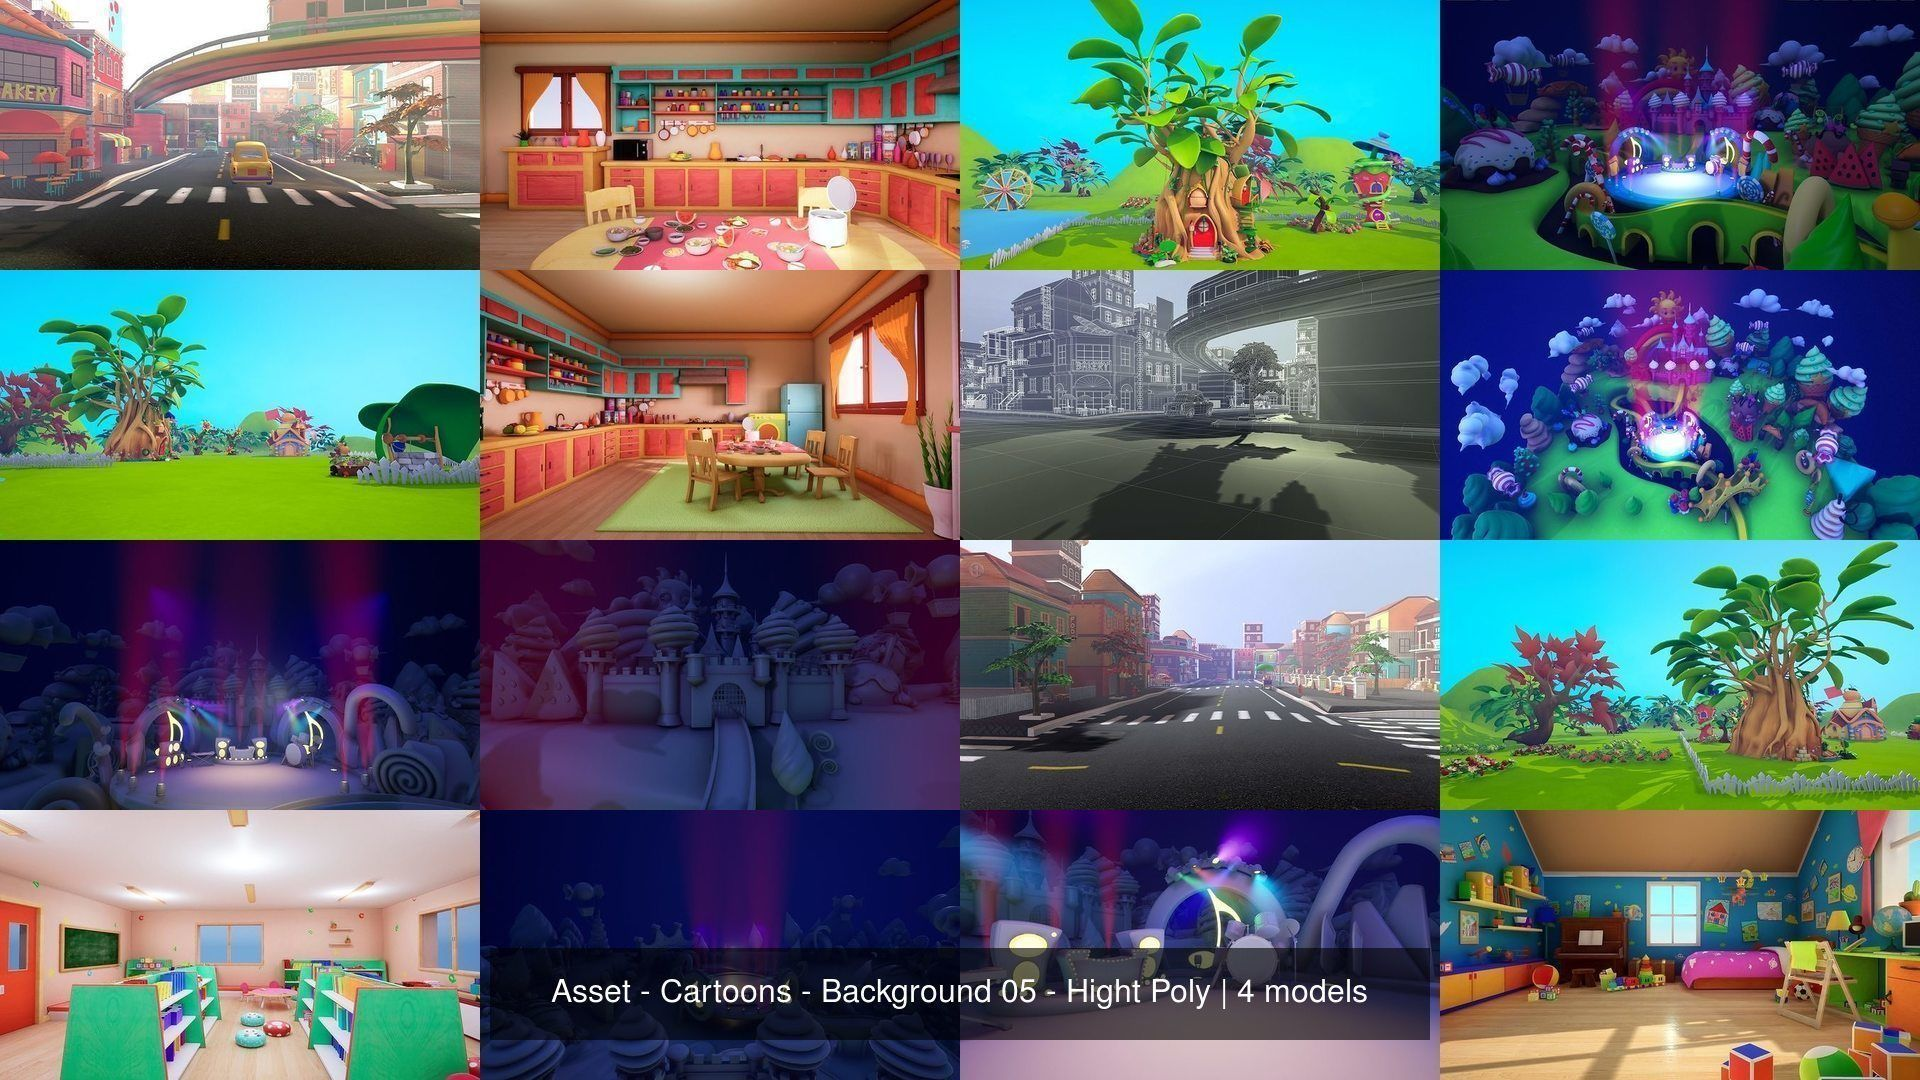 Asset - Cartoons - Background 05 - Hight Poly